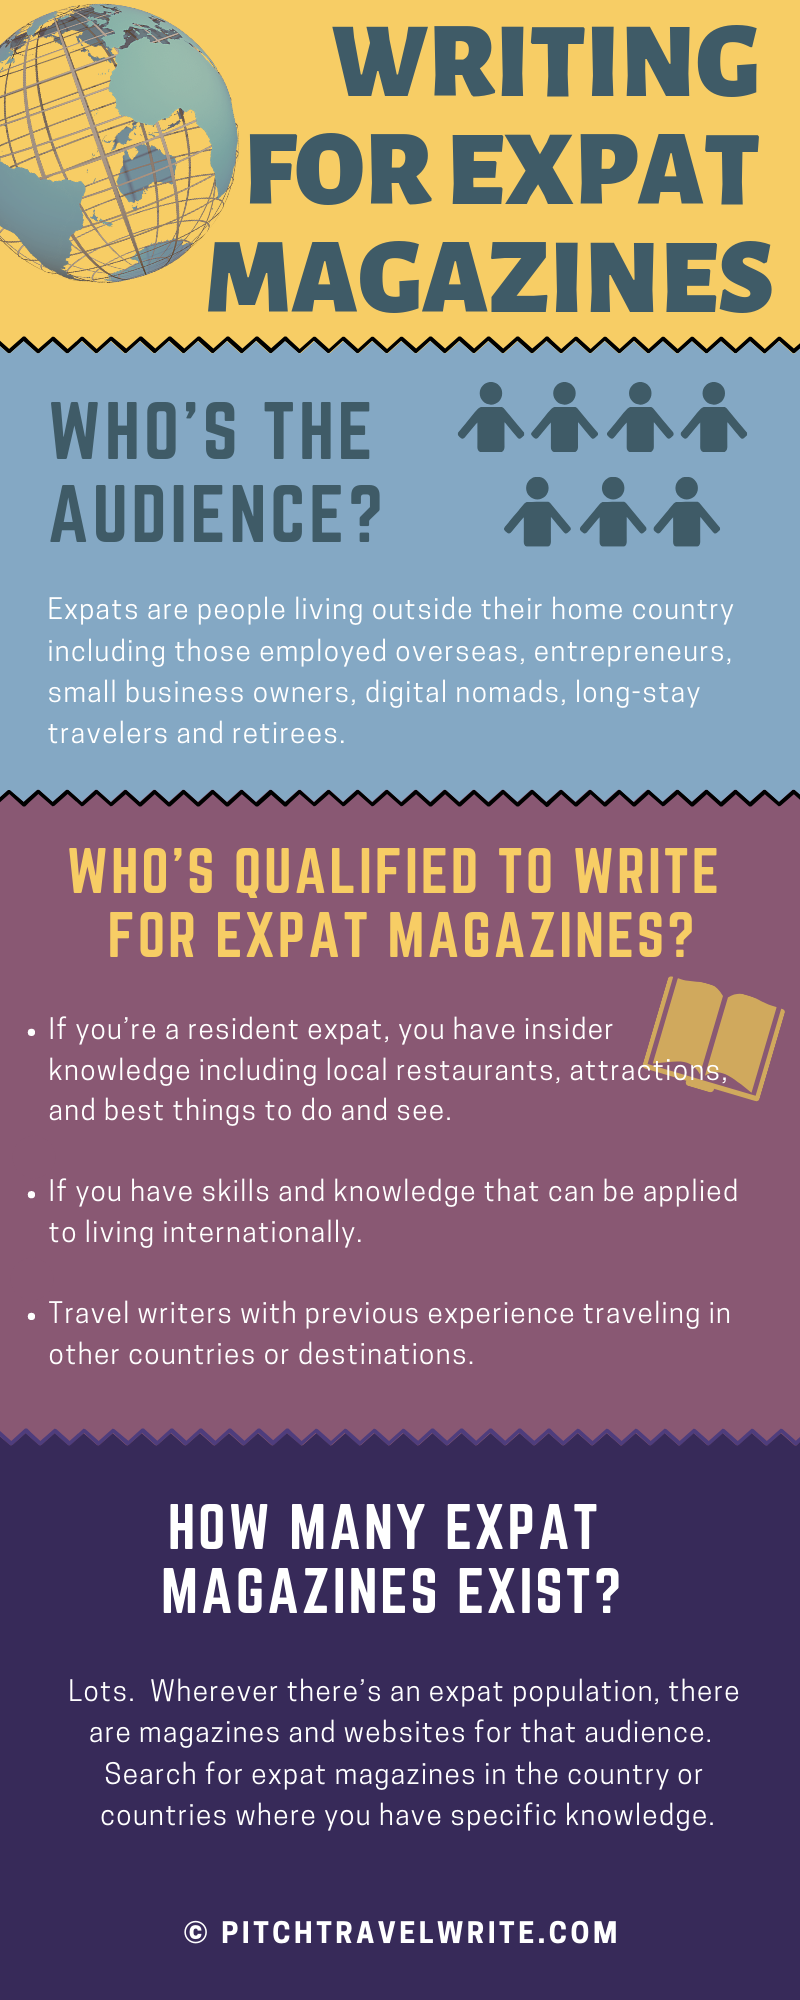 writing for expat magazines infographic